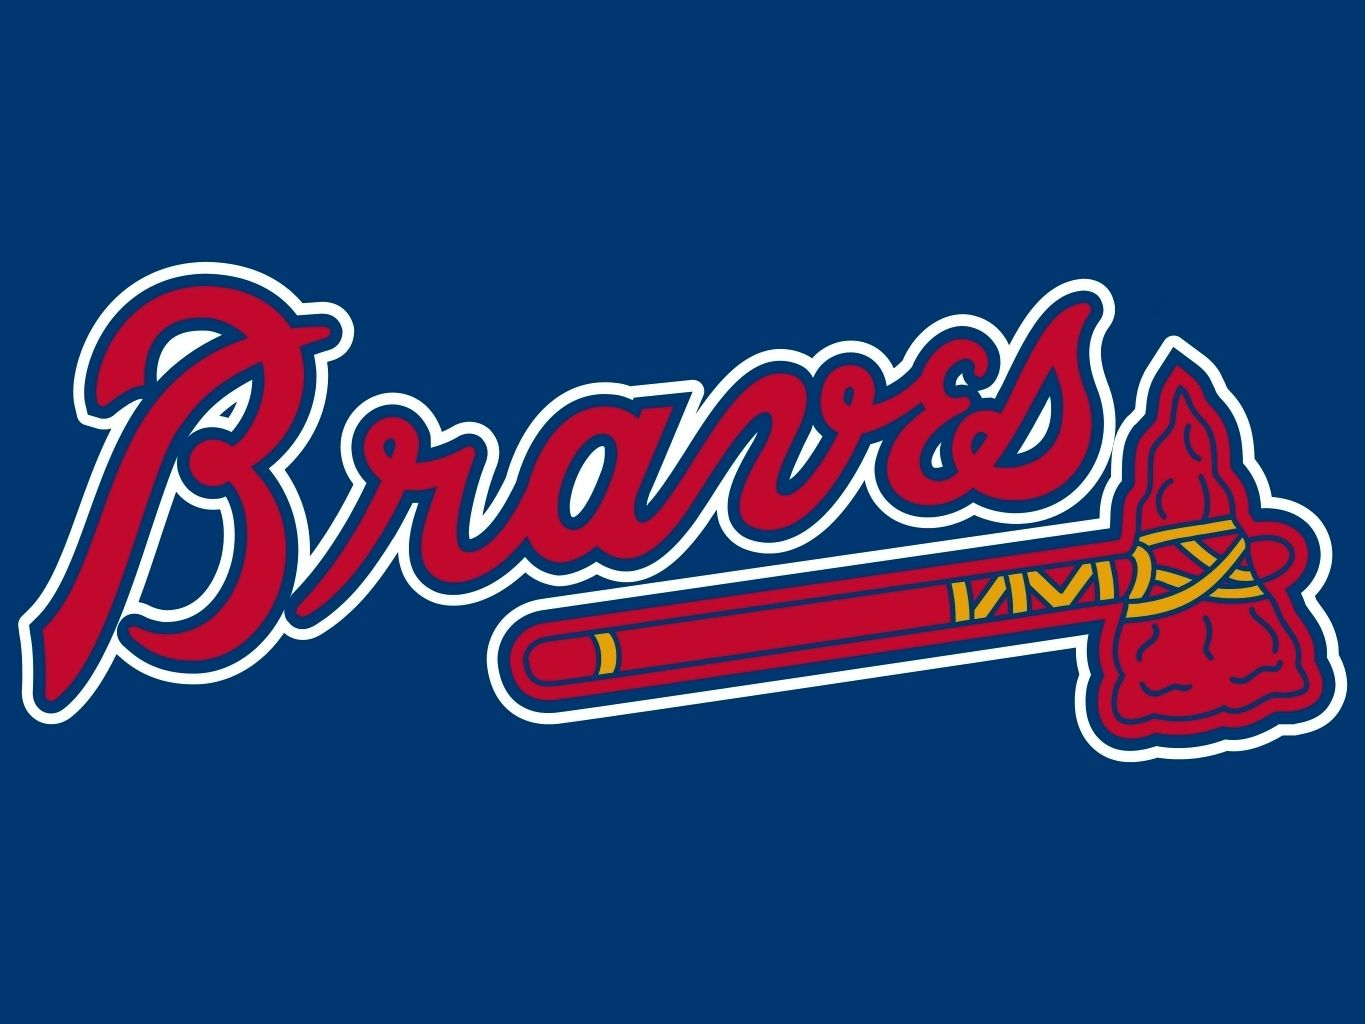 Atlanta Braves 9 Mlb Team Logo Vinyl Decal Sticker Car Window Wall Cornhole Ebay Atlanta Braves Logo Mlb Team Logos Atlanta Braves